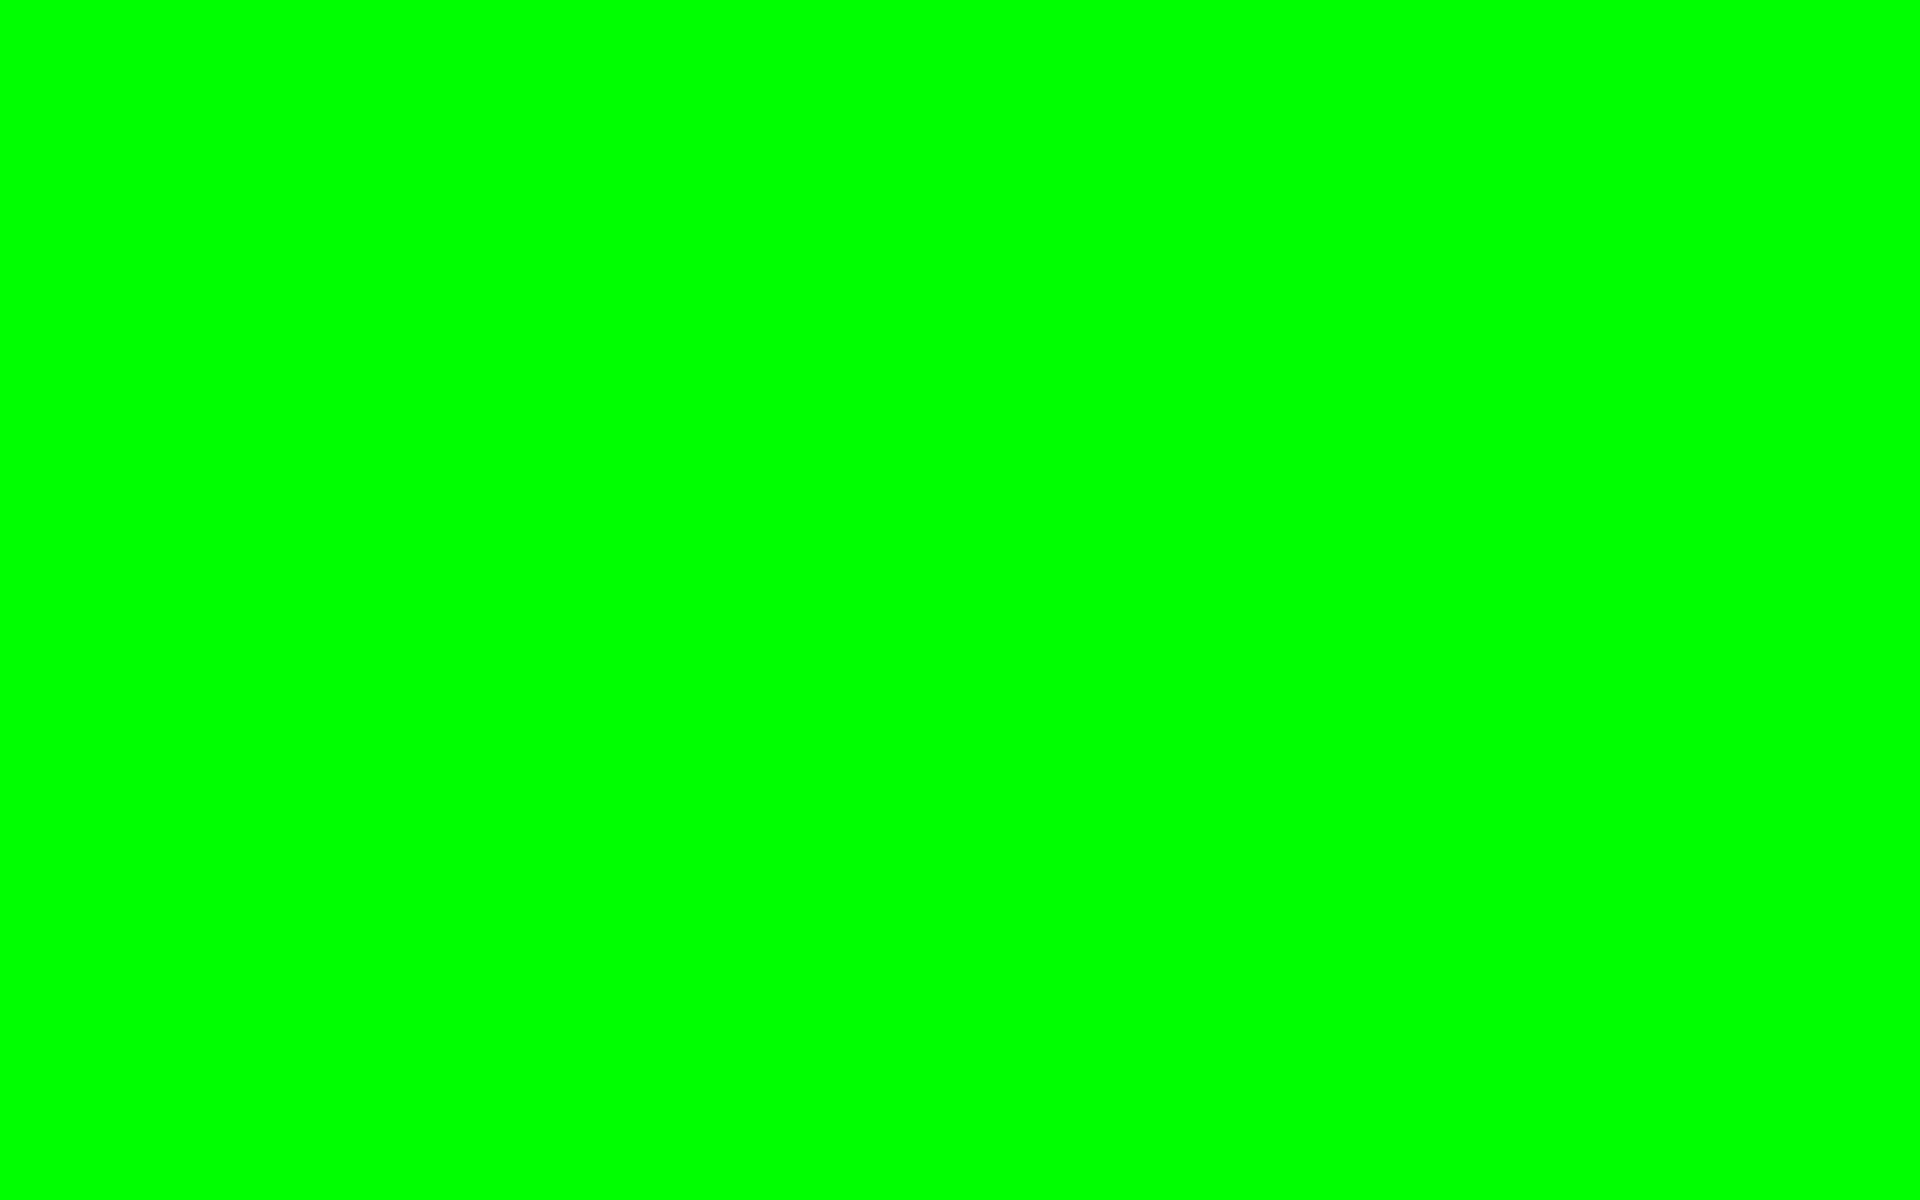 1920x1200 Green X11 Gui Green Solid Color Background